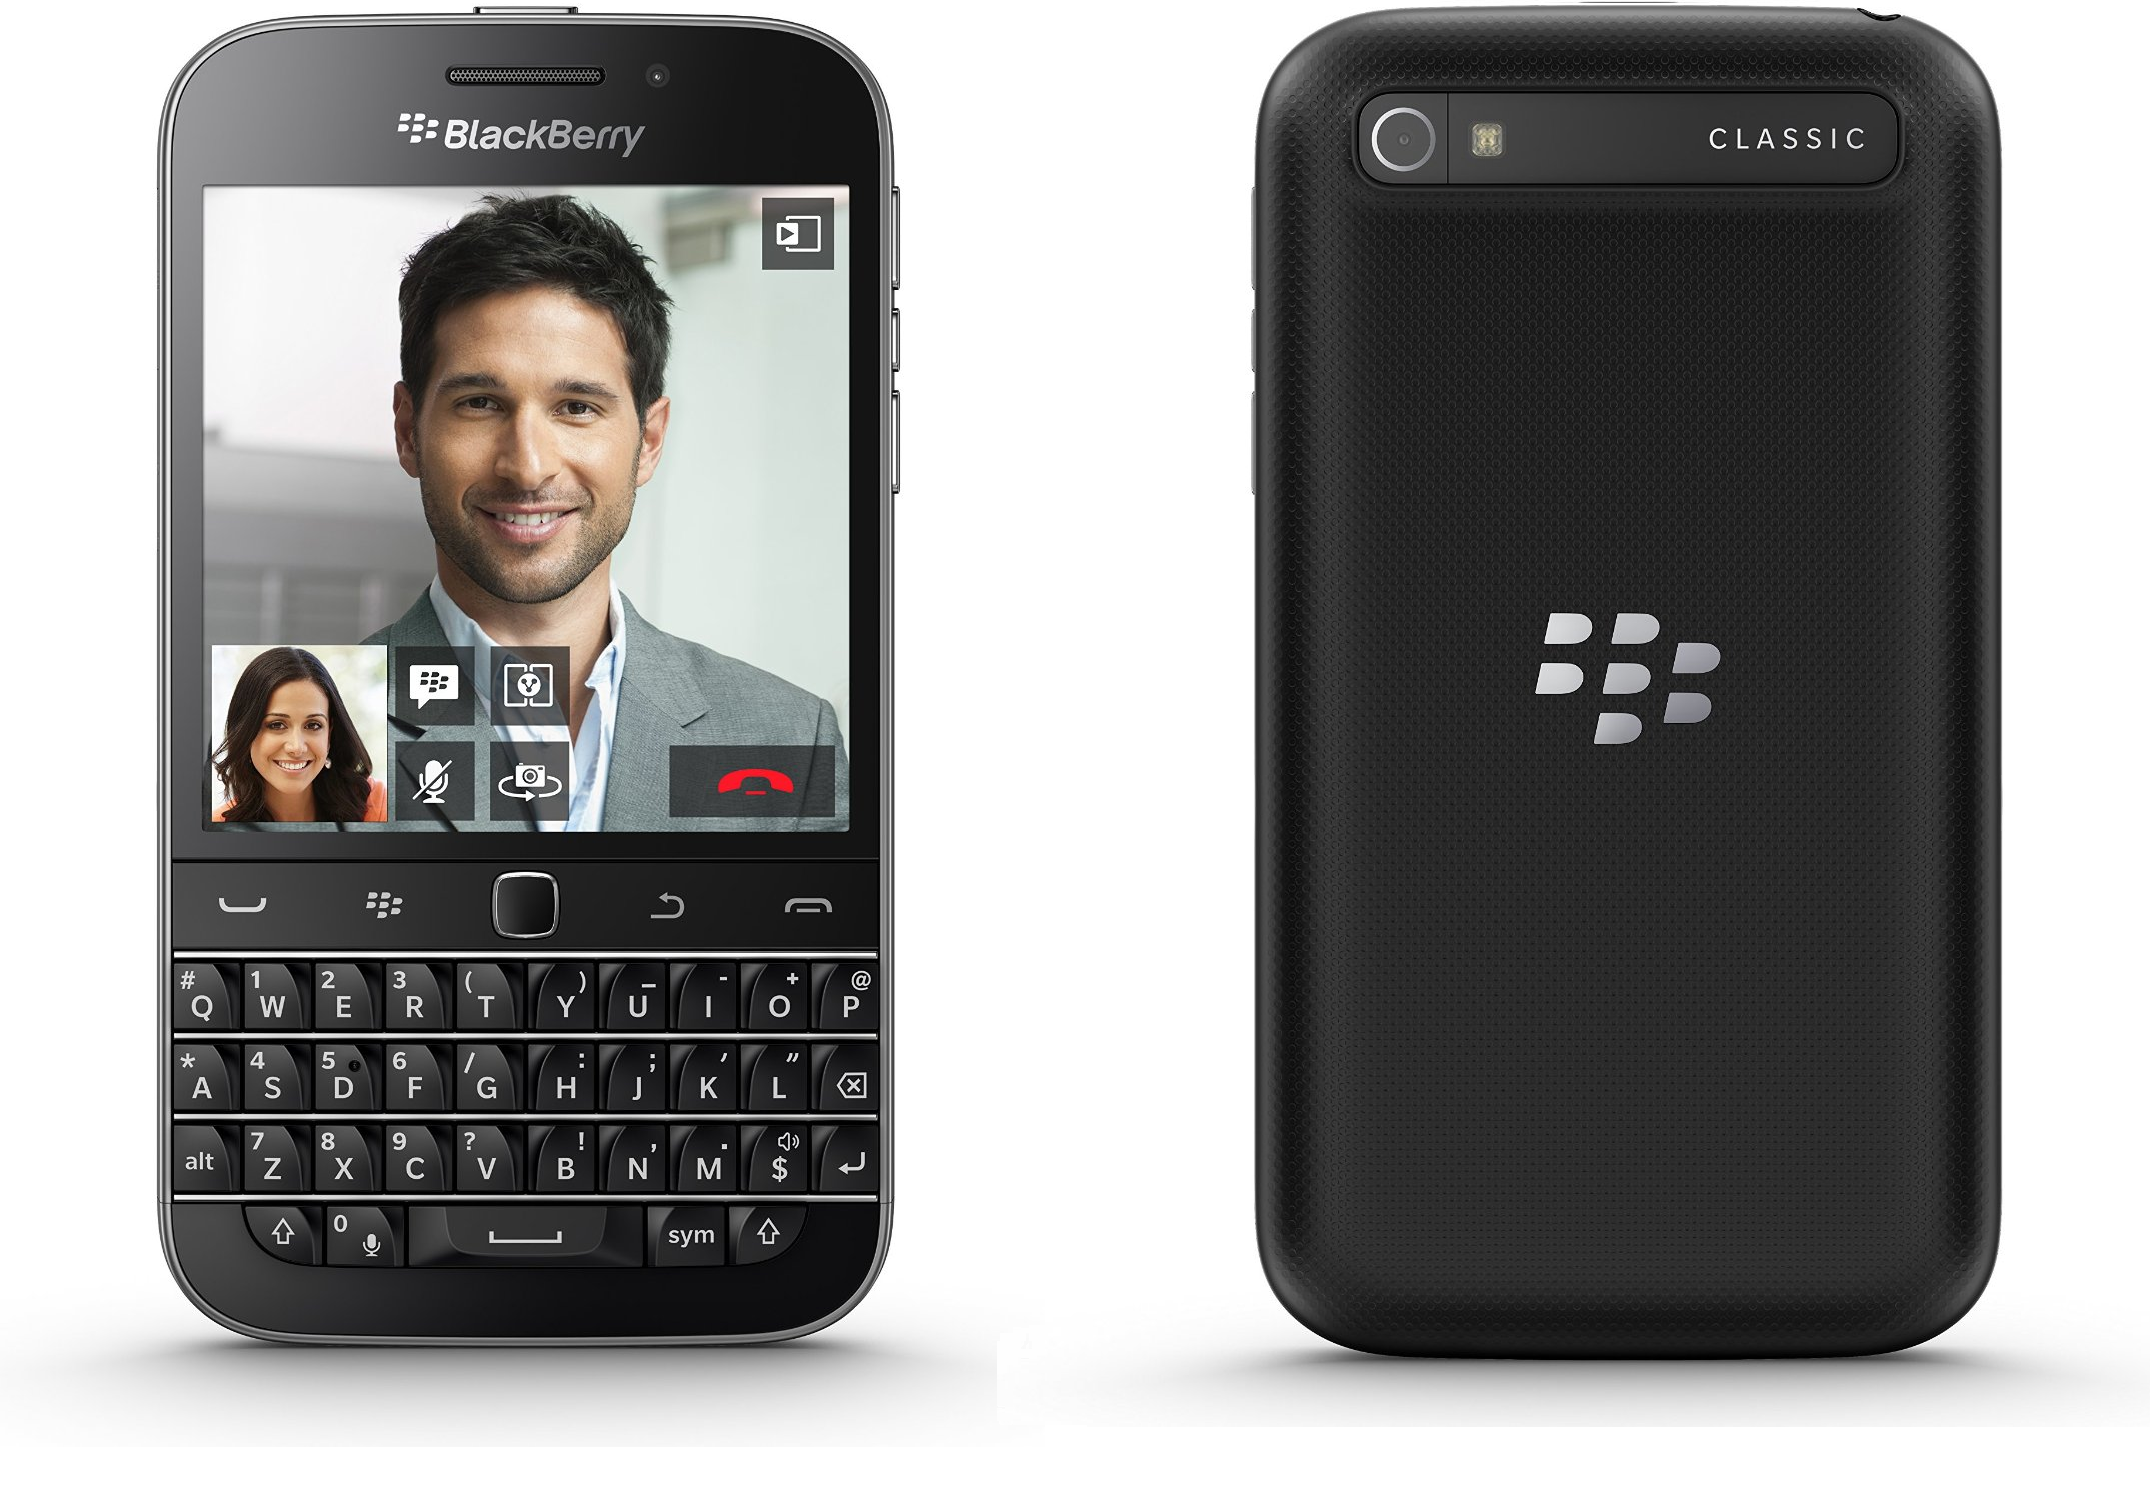 BlackBerry Classic Unites Old and New, Available Now - IGN